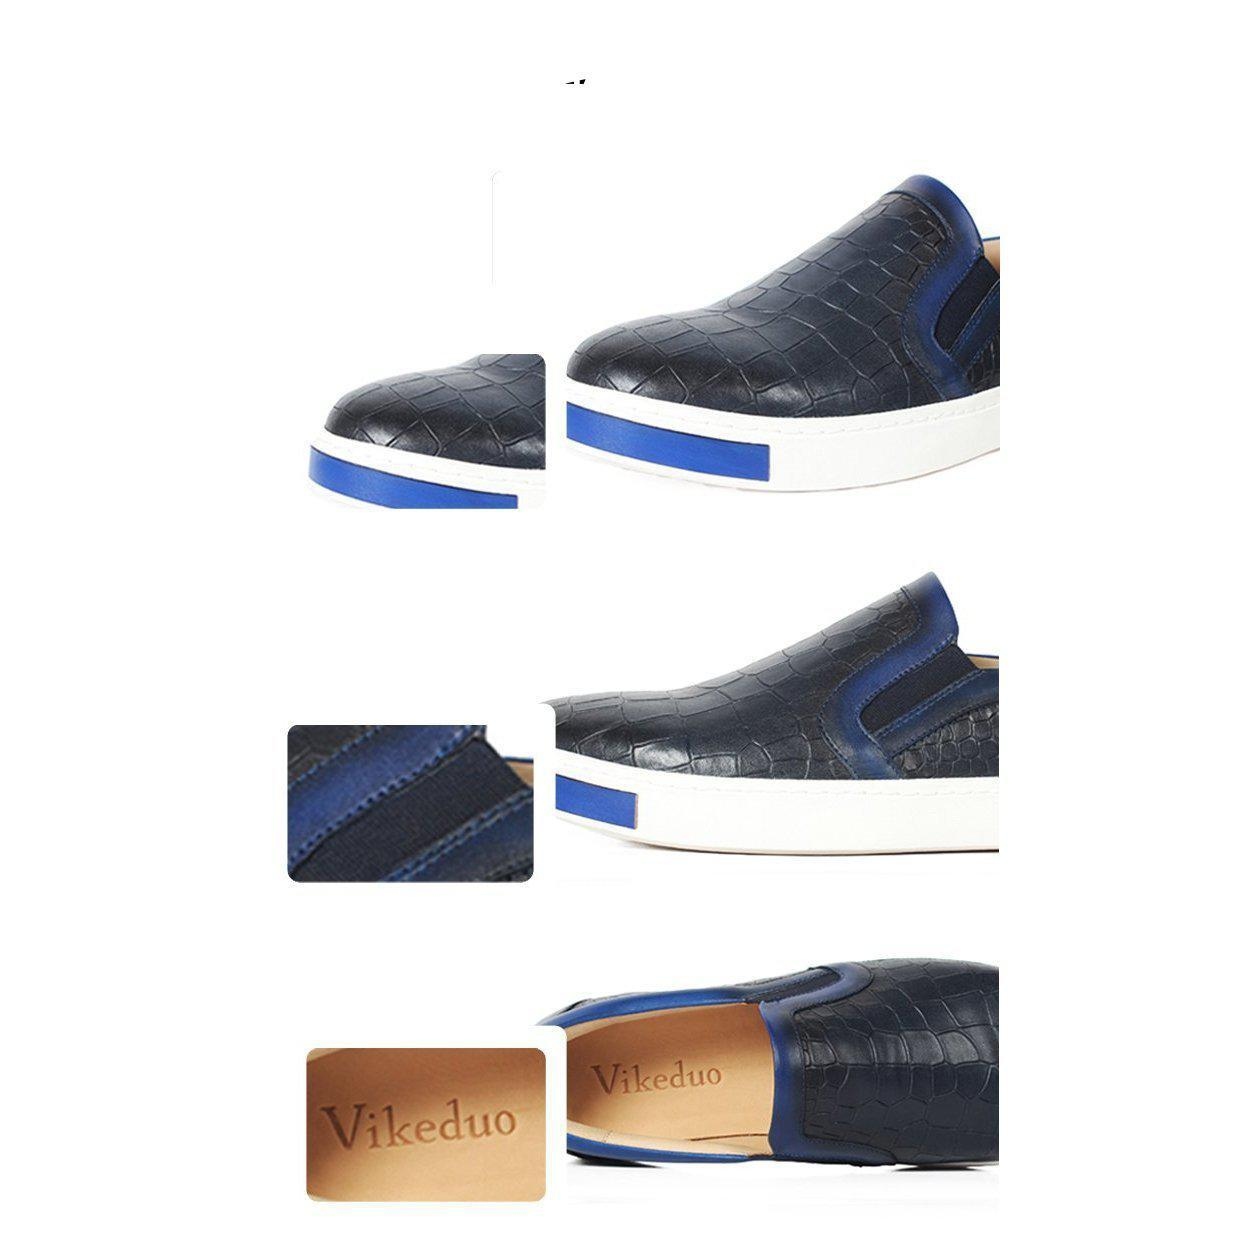 Custom Retro Leather Casual Shoes-Men - Shoes - Casual + Sneakers-VIKEDUO-blue-EU38/US6-Peccadilly